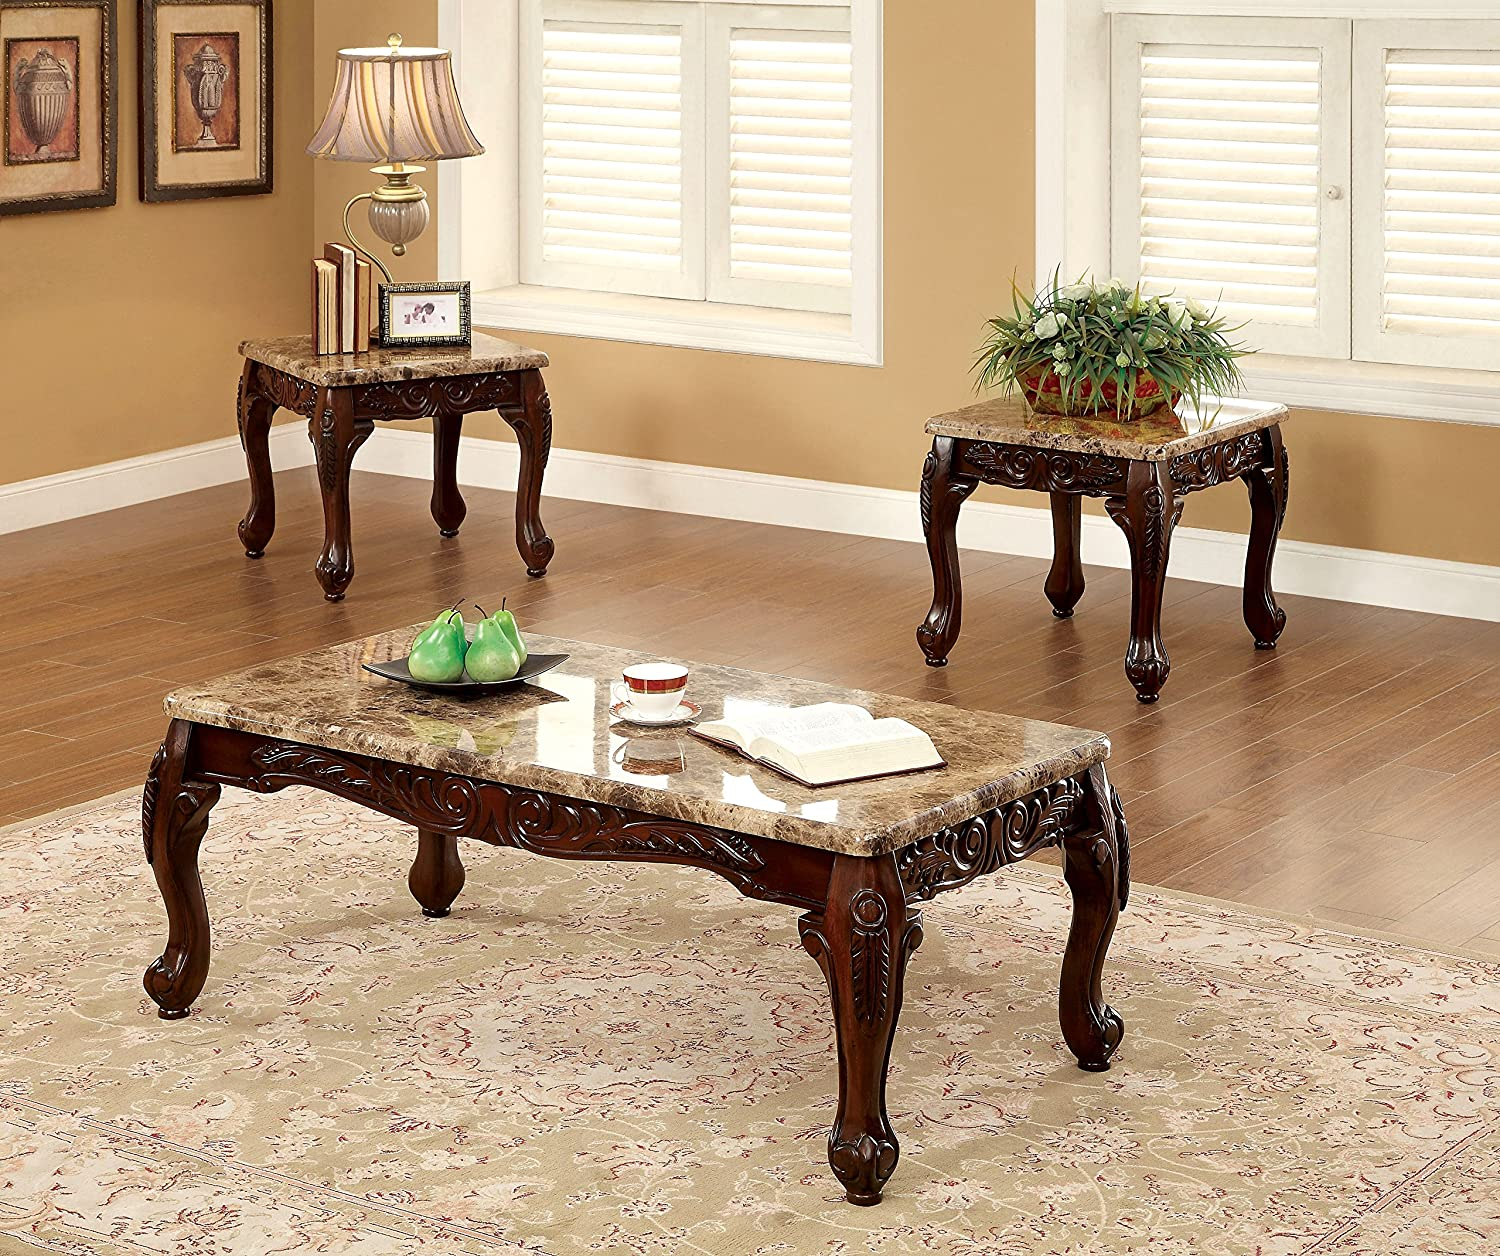 Amazon.com Furniture of America Beltran 3-Piece Traditional Faux Marble Top Accent Tables Set Dark Oak Kitchen \u0026 Dining & Amazon.com: Furniture of America Beltran 3-Piece Traditional Faux ...